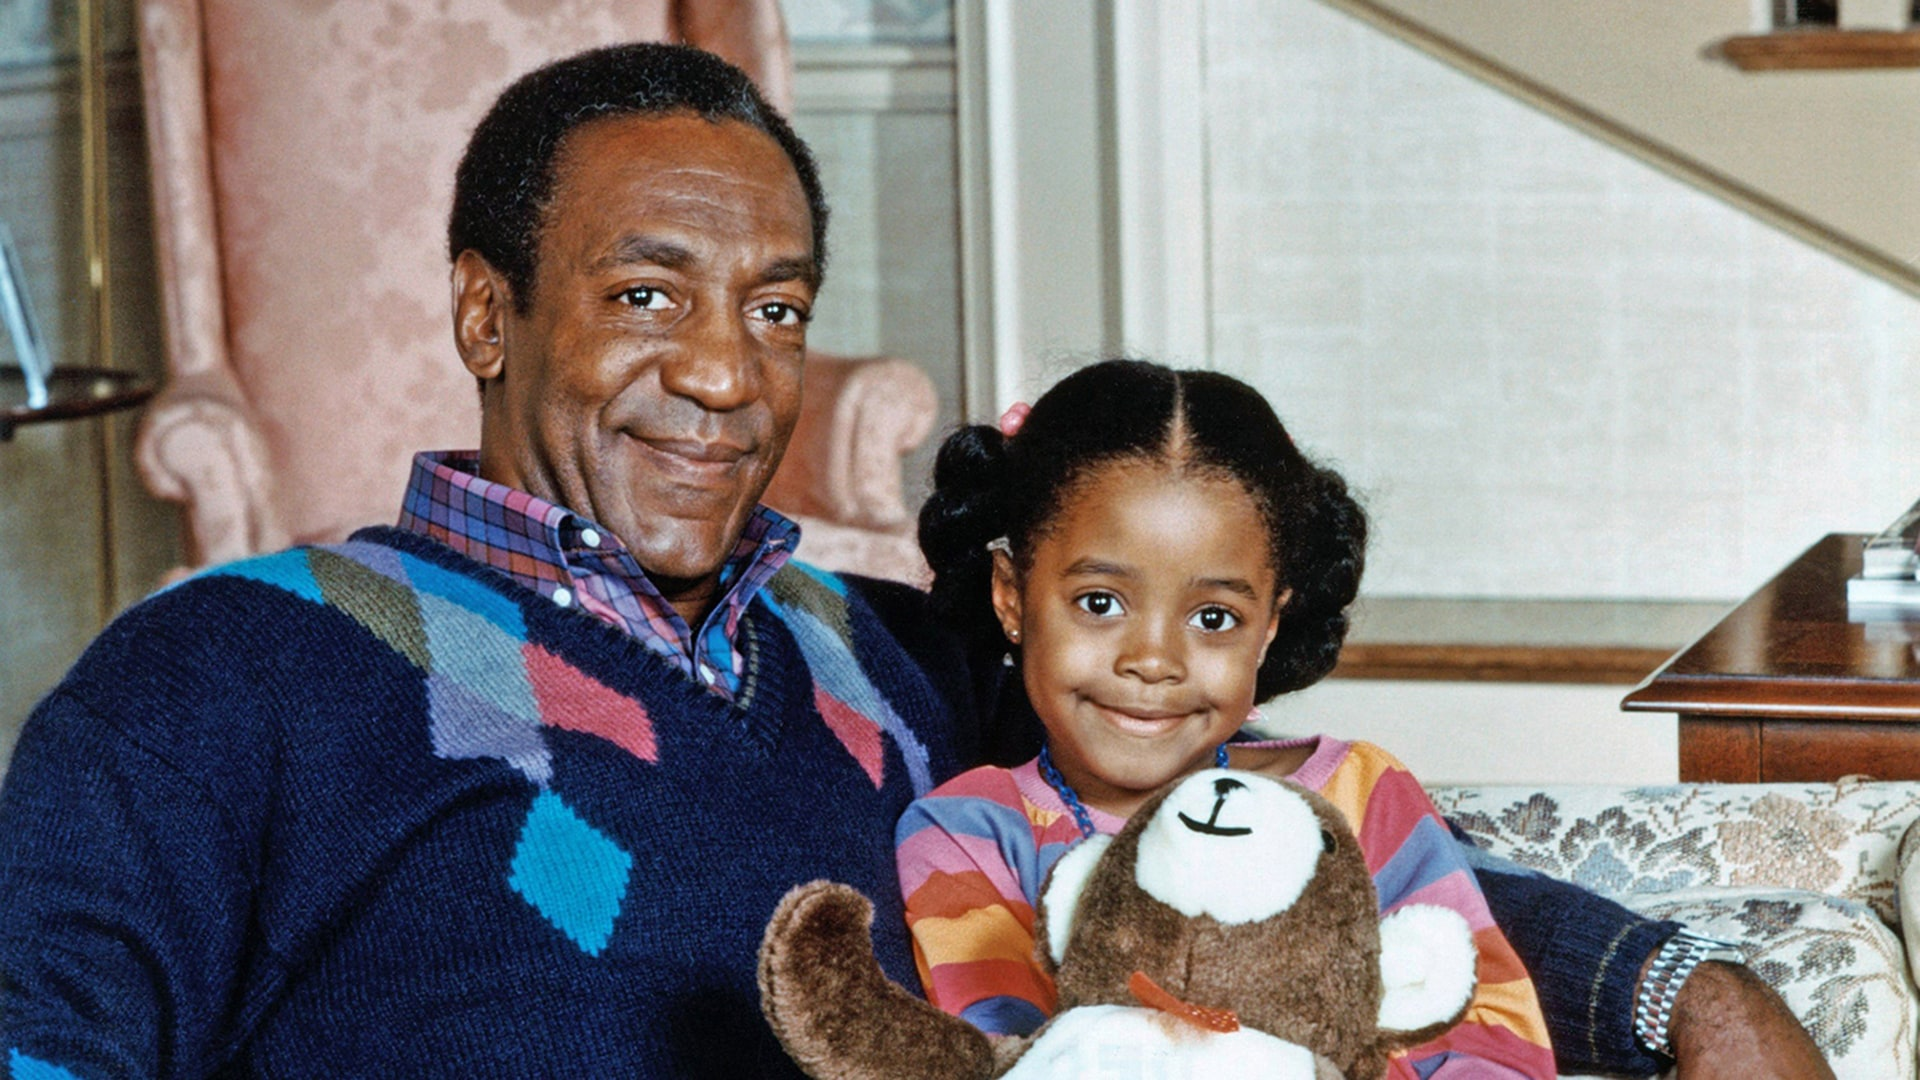 Image: THE COSBY SHOW, Bill Cosby, Keshia Knight Pulliam, (Season 3), 1984-1992. © Carsey-Werner Co. / Cour